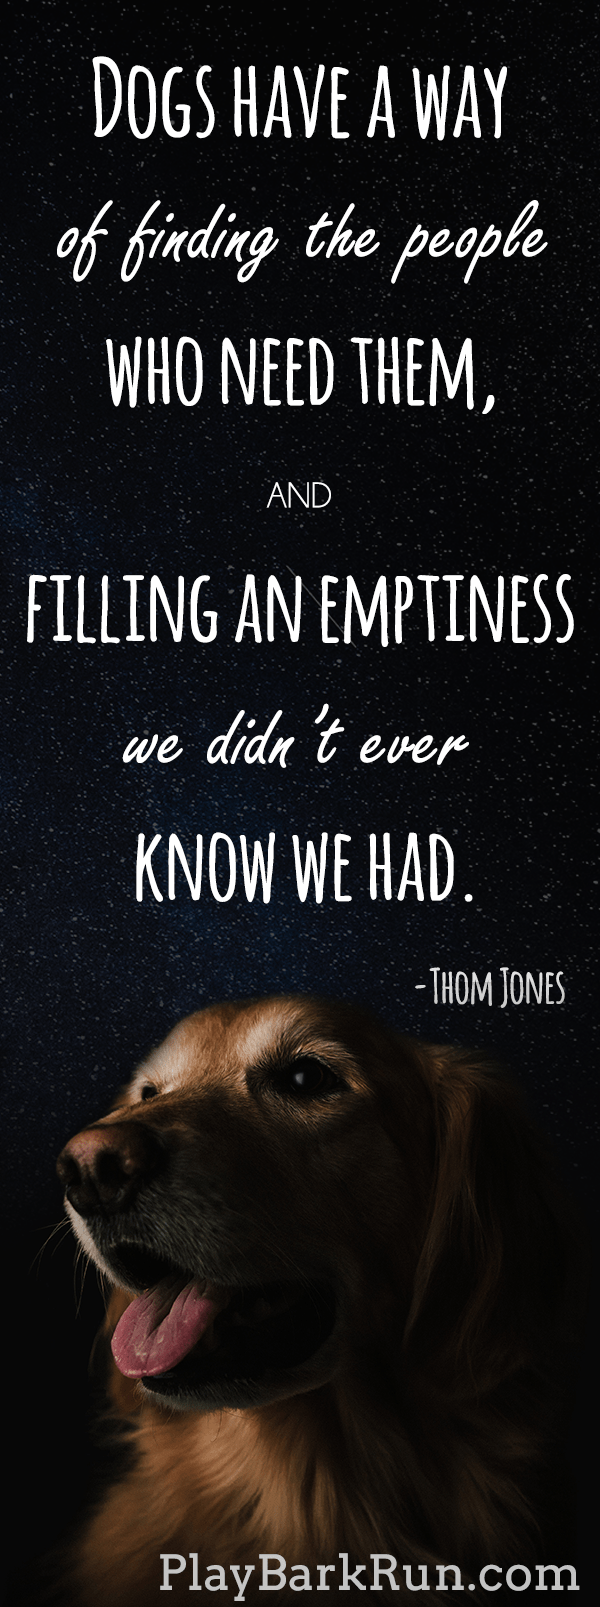 27 Inspirational Dog Quotes about Life and Love  PlayBarkRun